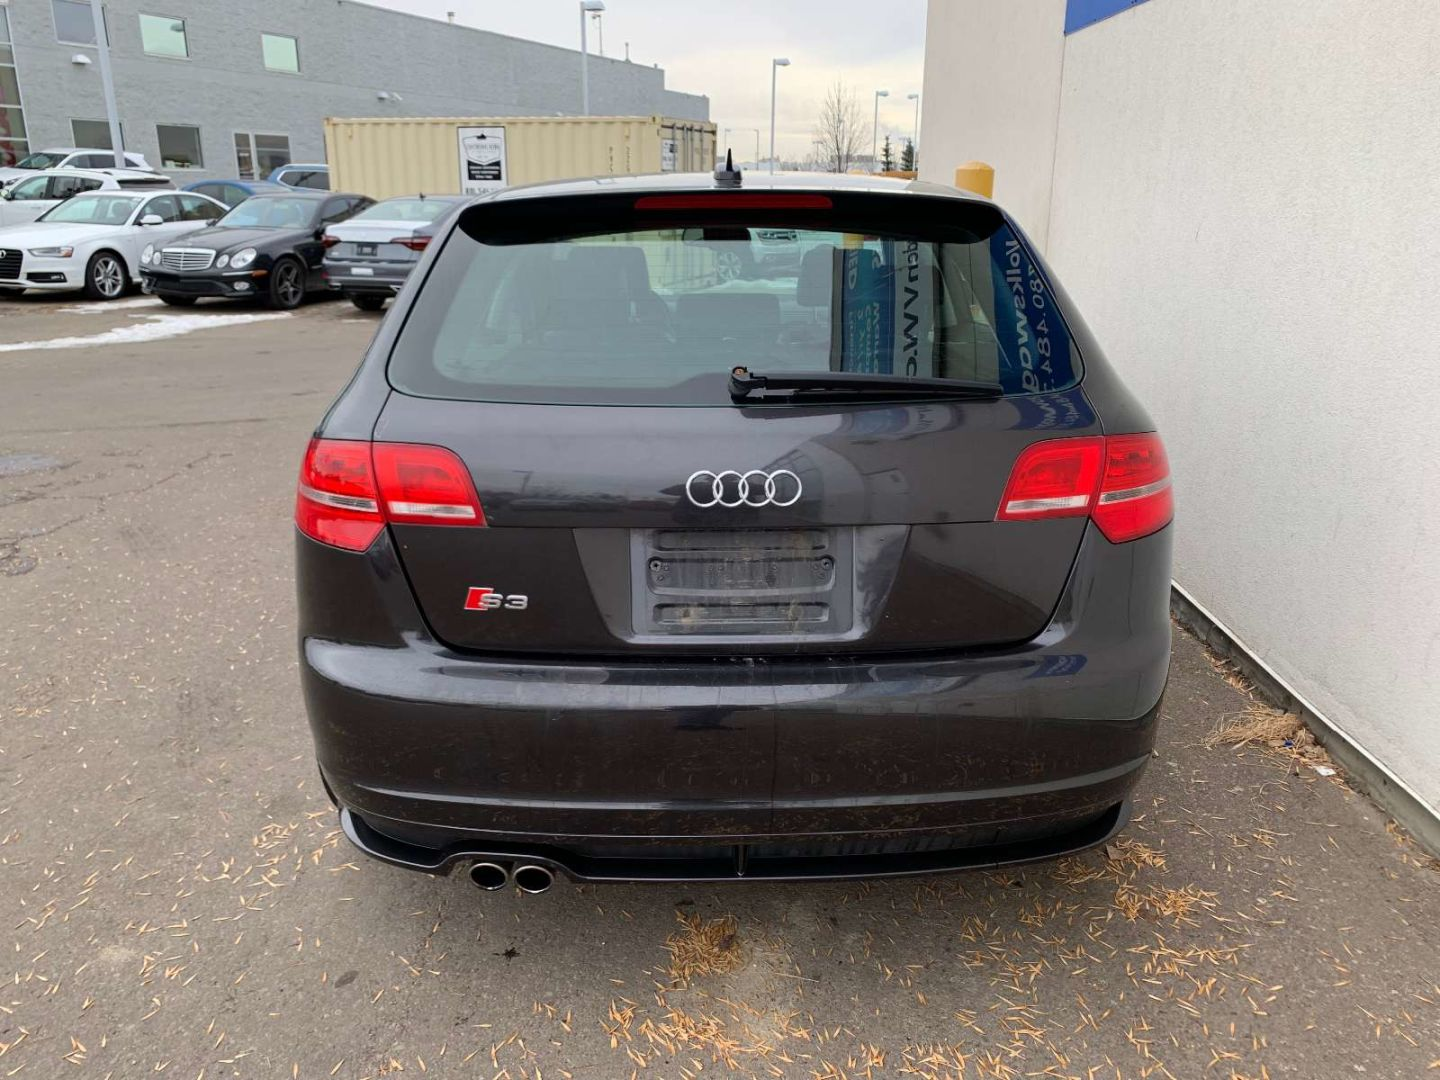 2006 Audi A3 S-Line for sale in Edmonton, Alberta